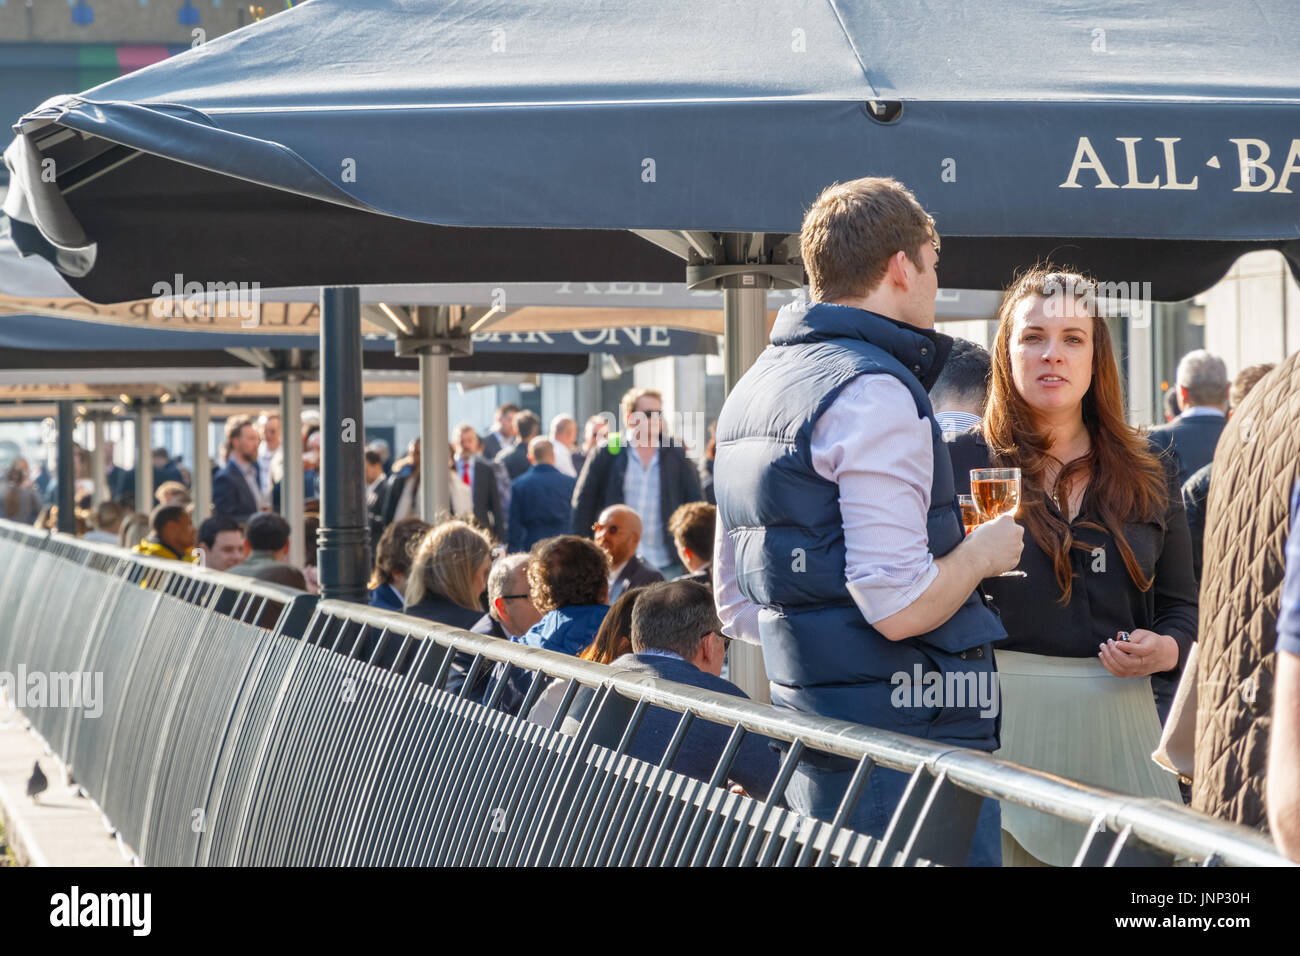 London, UK - May 10, 2017 - A young businesswoman with her colleagues at a dockside bar in Canary Wharf packed with people drinking on a sunny day - Stock Image